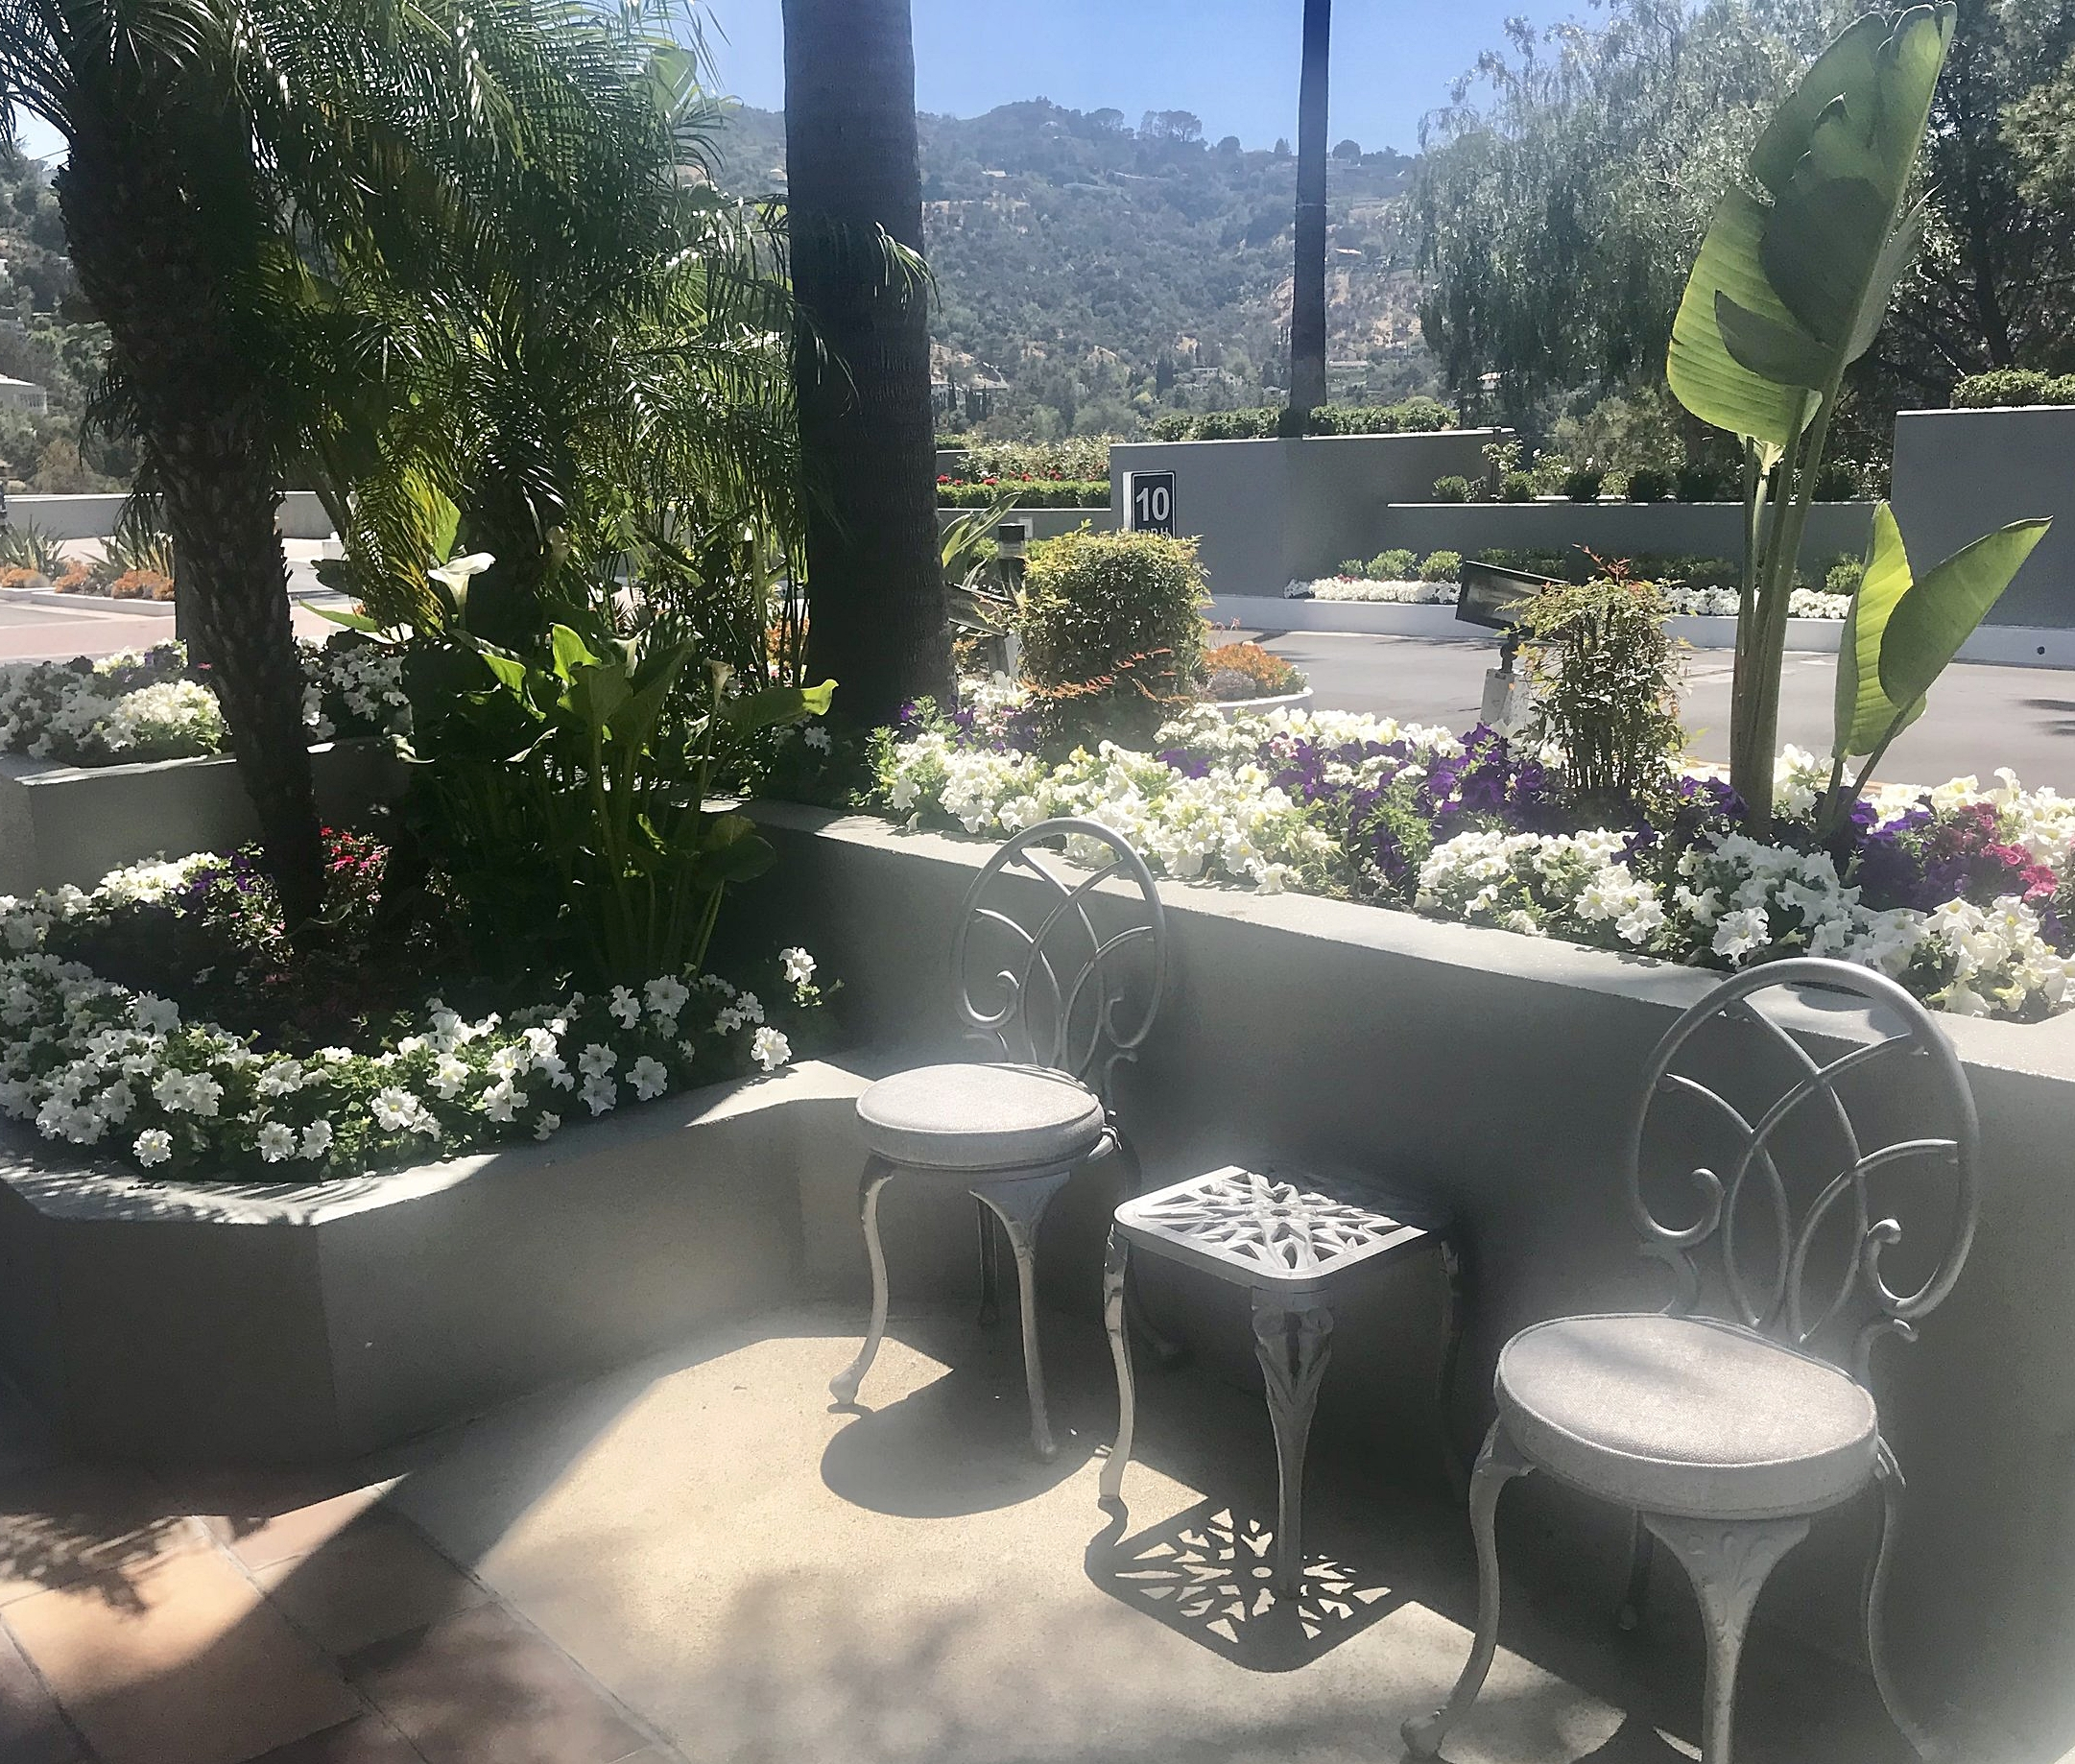 Plenty of outside seating areas to enjoy the SoCal sun! Views of the Hollywood Hills.